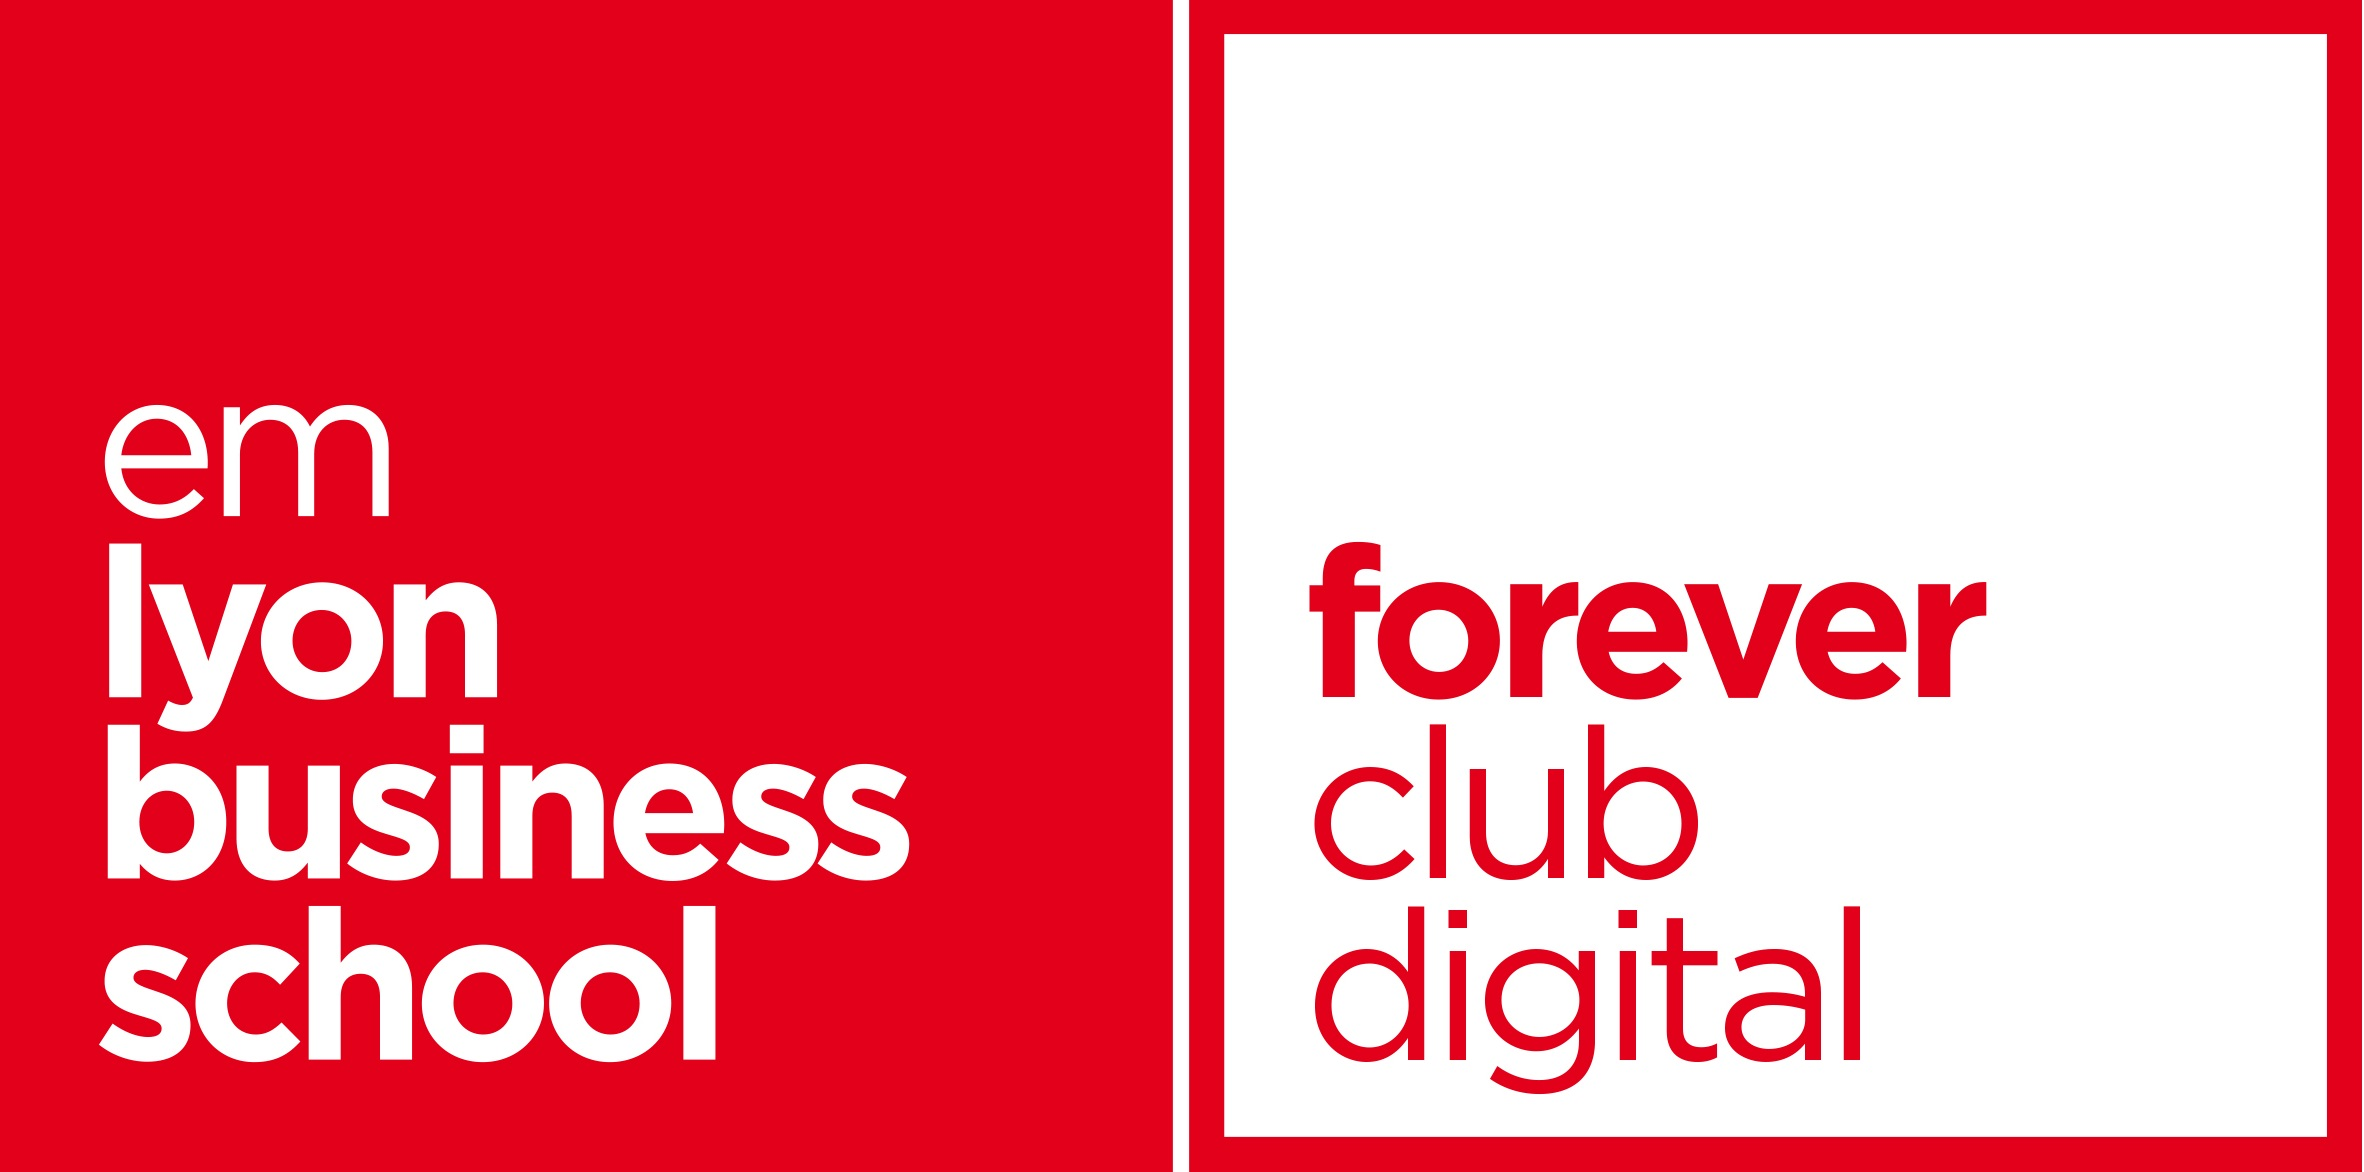 Club Digital emlyon